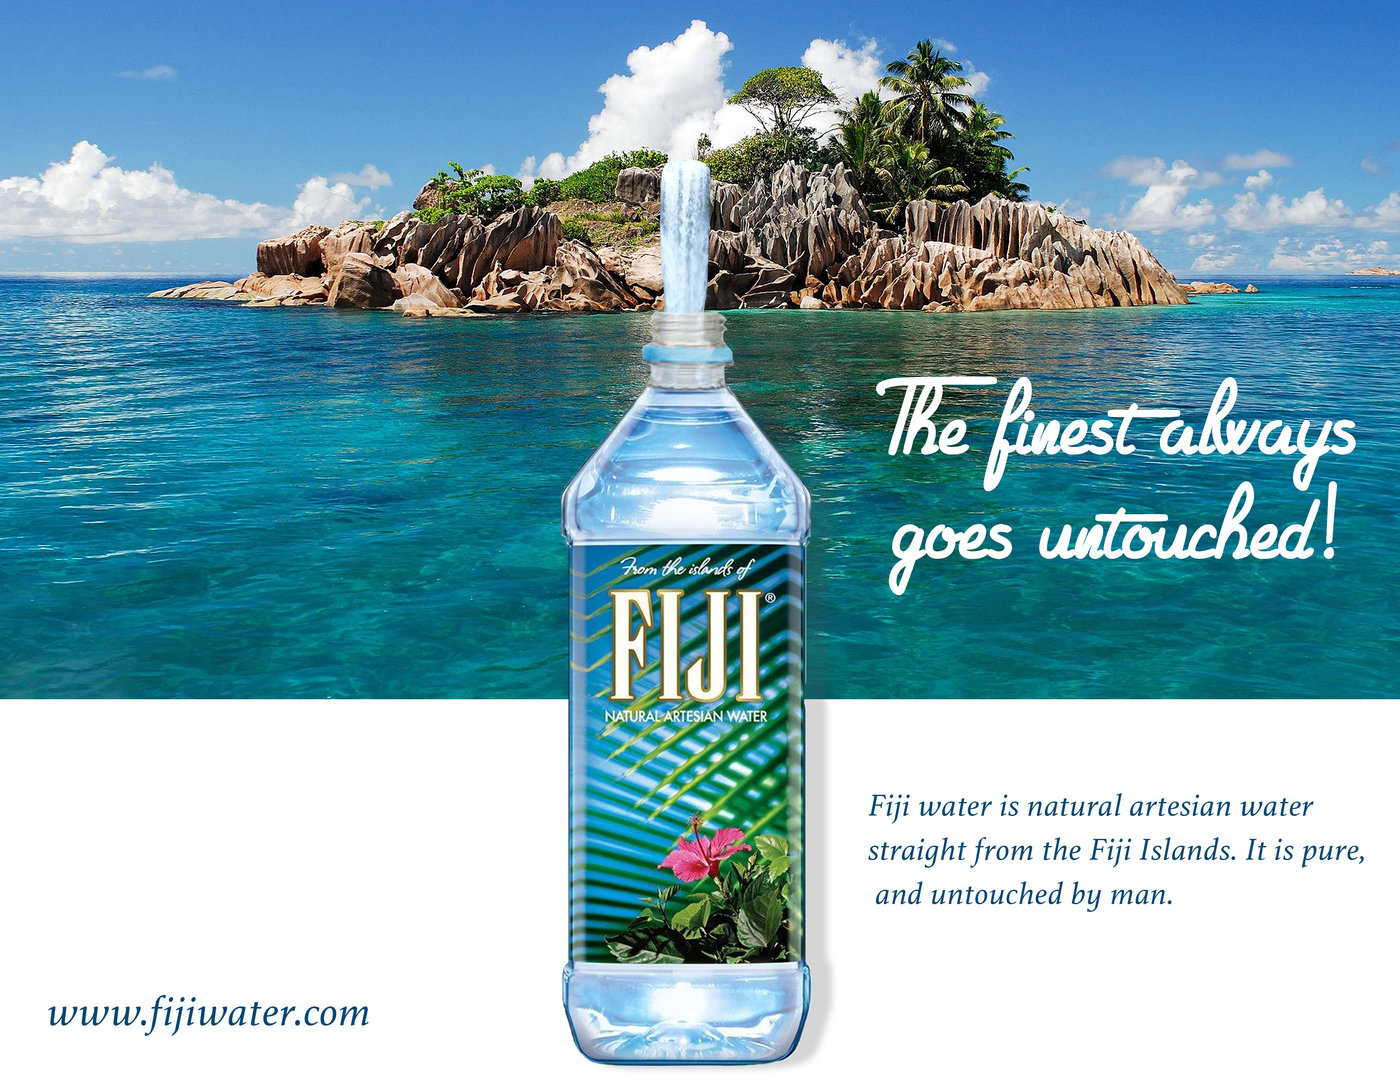 Fiji Water Poster By Quinique Dozier At Coroflot Com